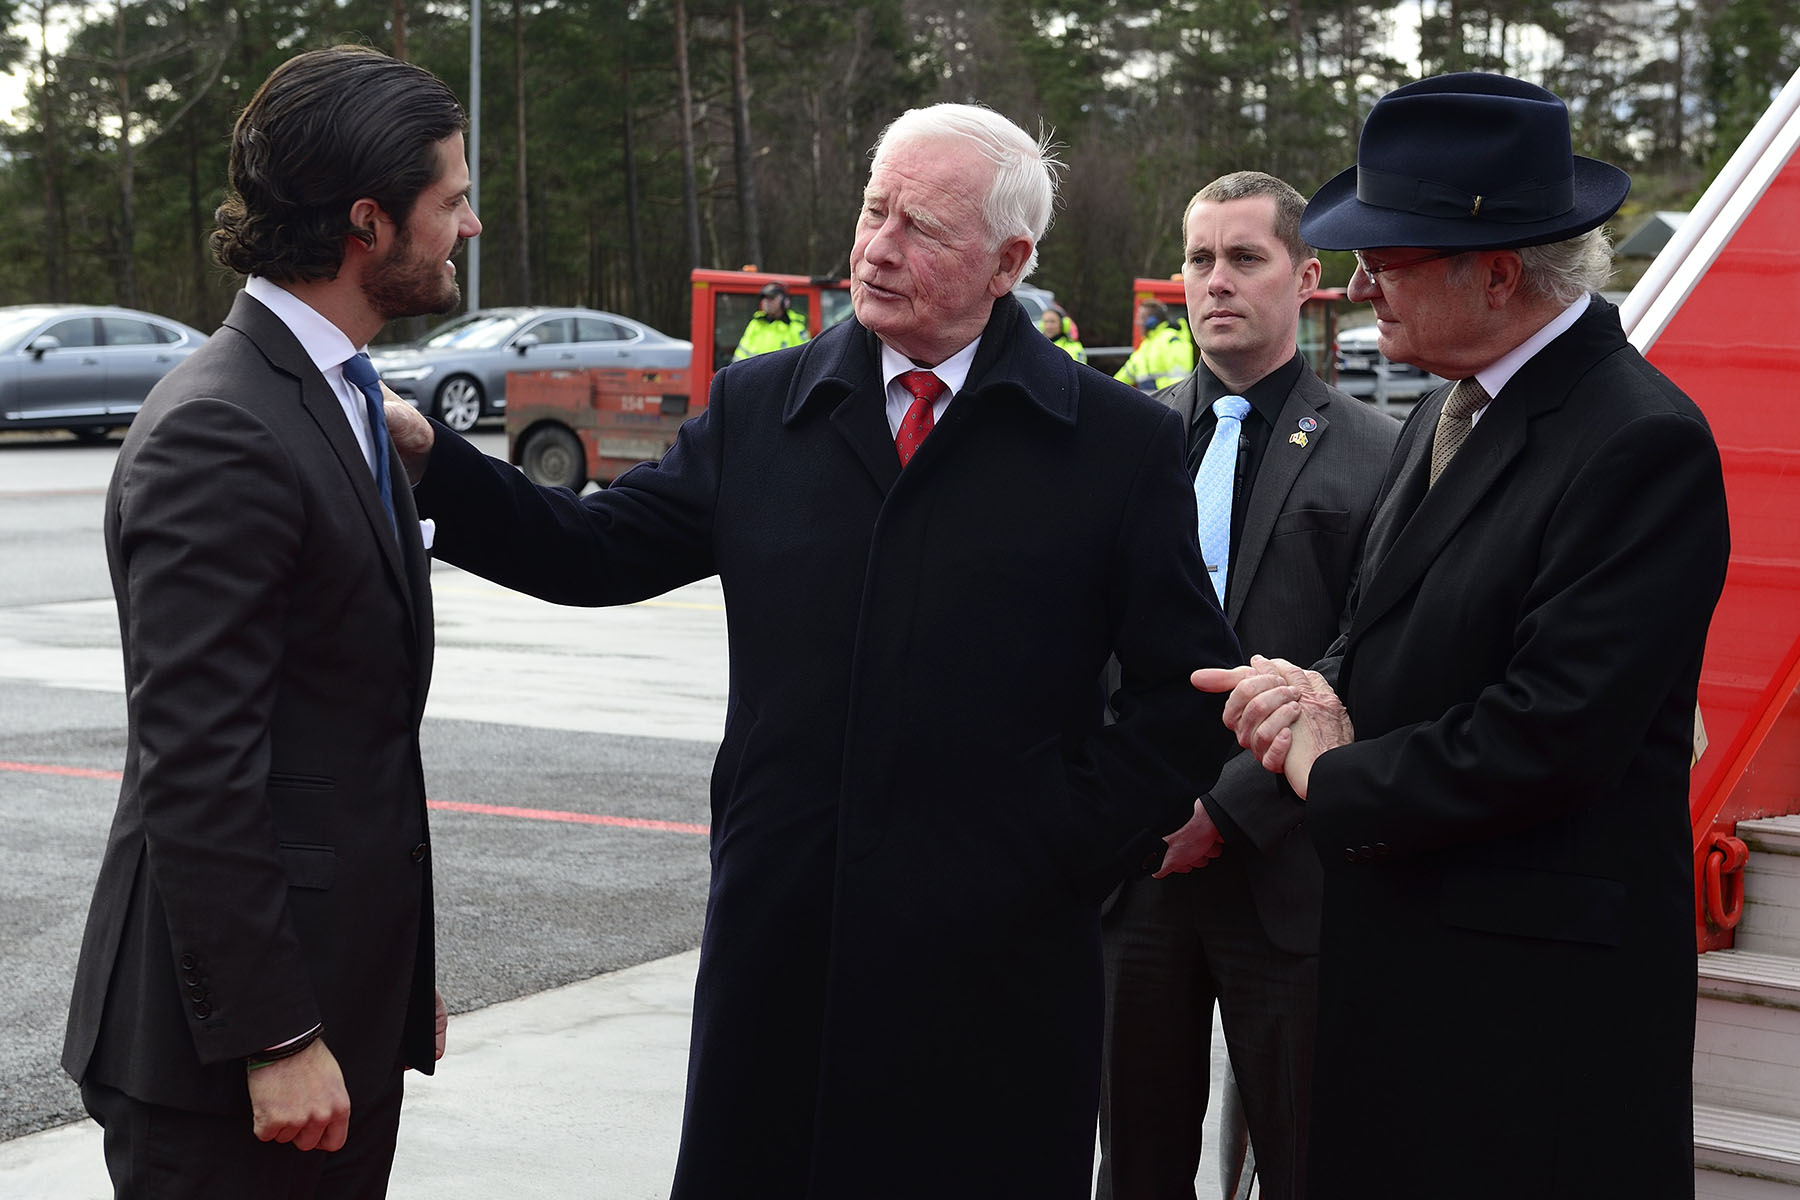 Upon arrival in Gothenburg, they were met by His Majesty Carl XVI Gustaf and His Royal Highness Prince Carl Philip.